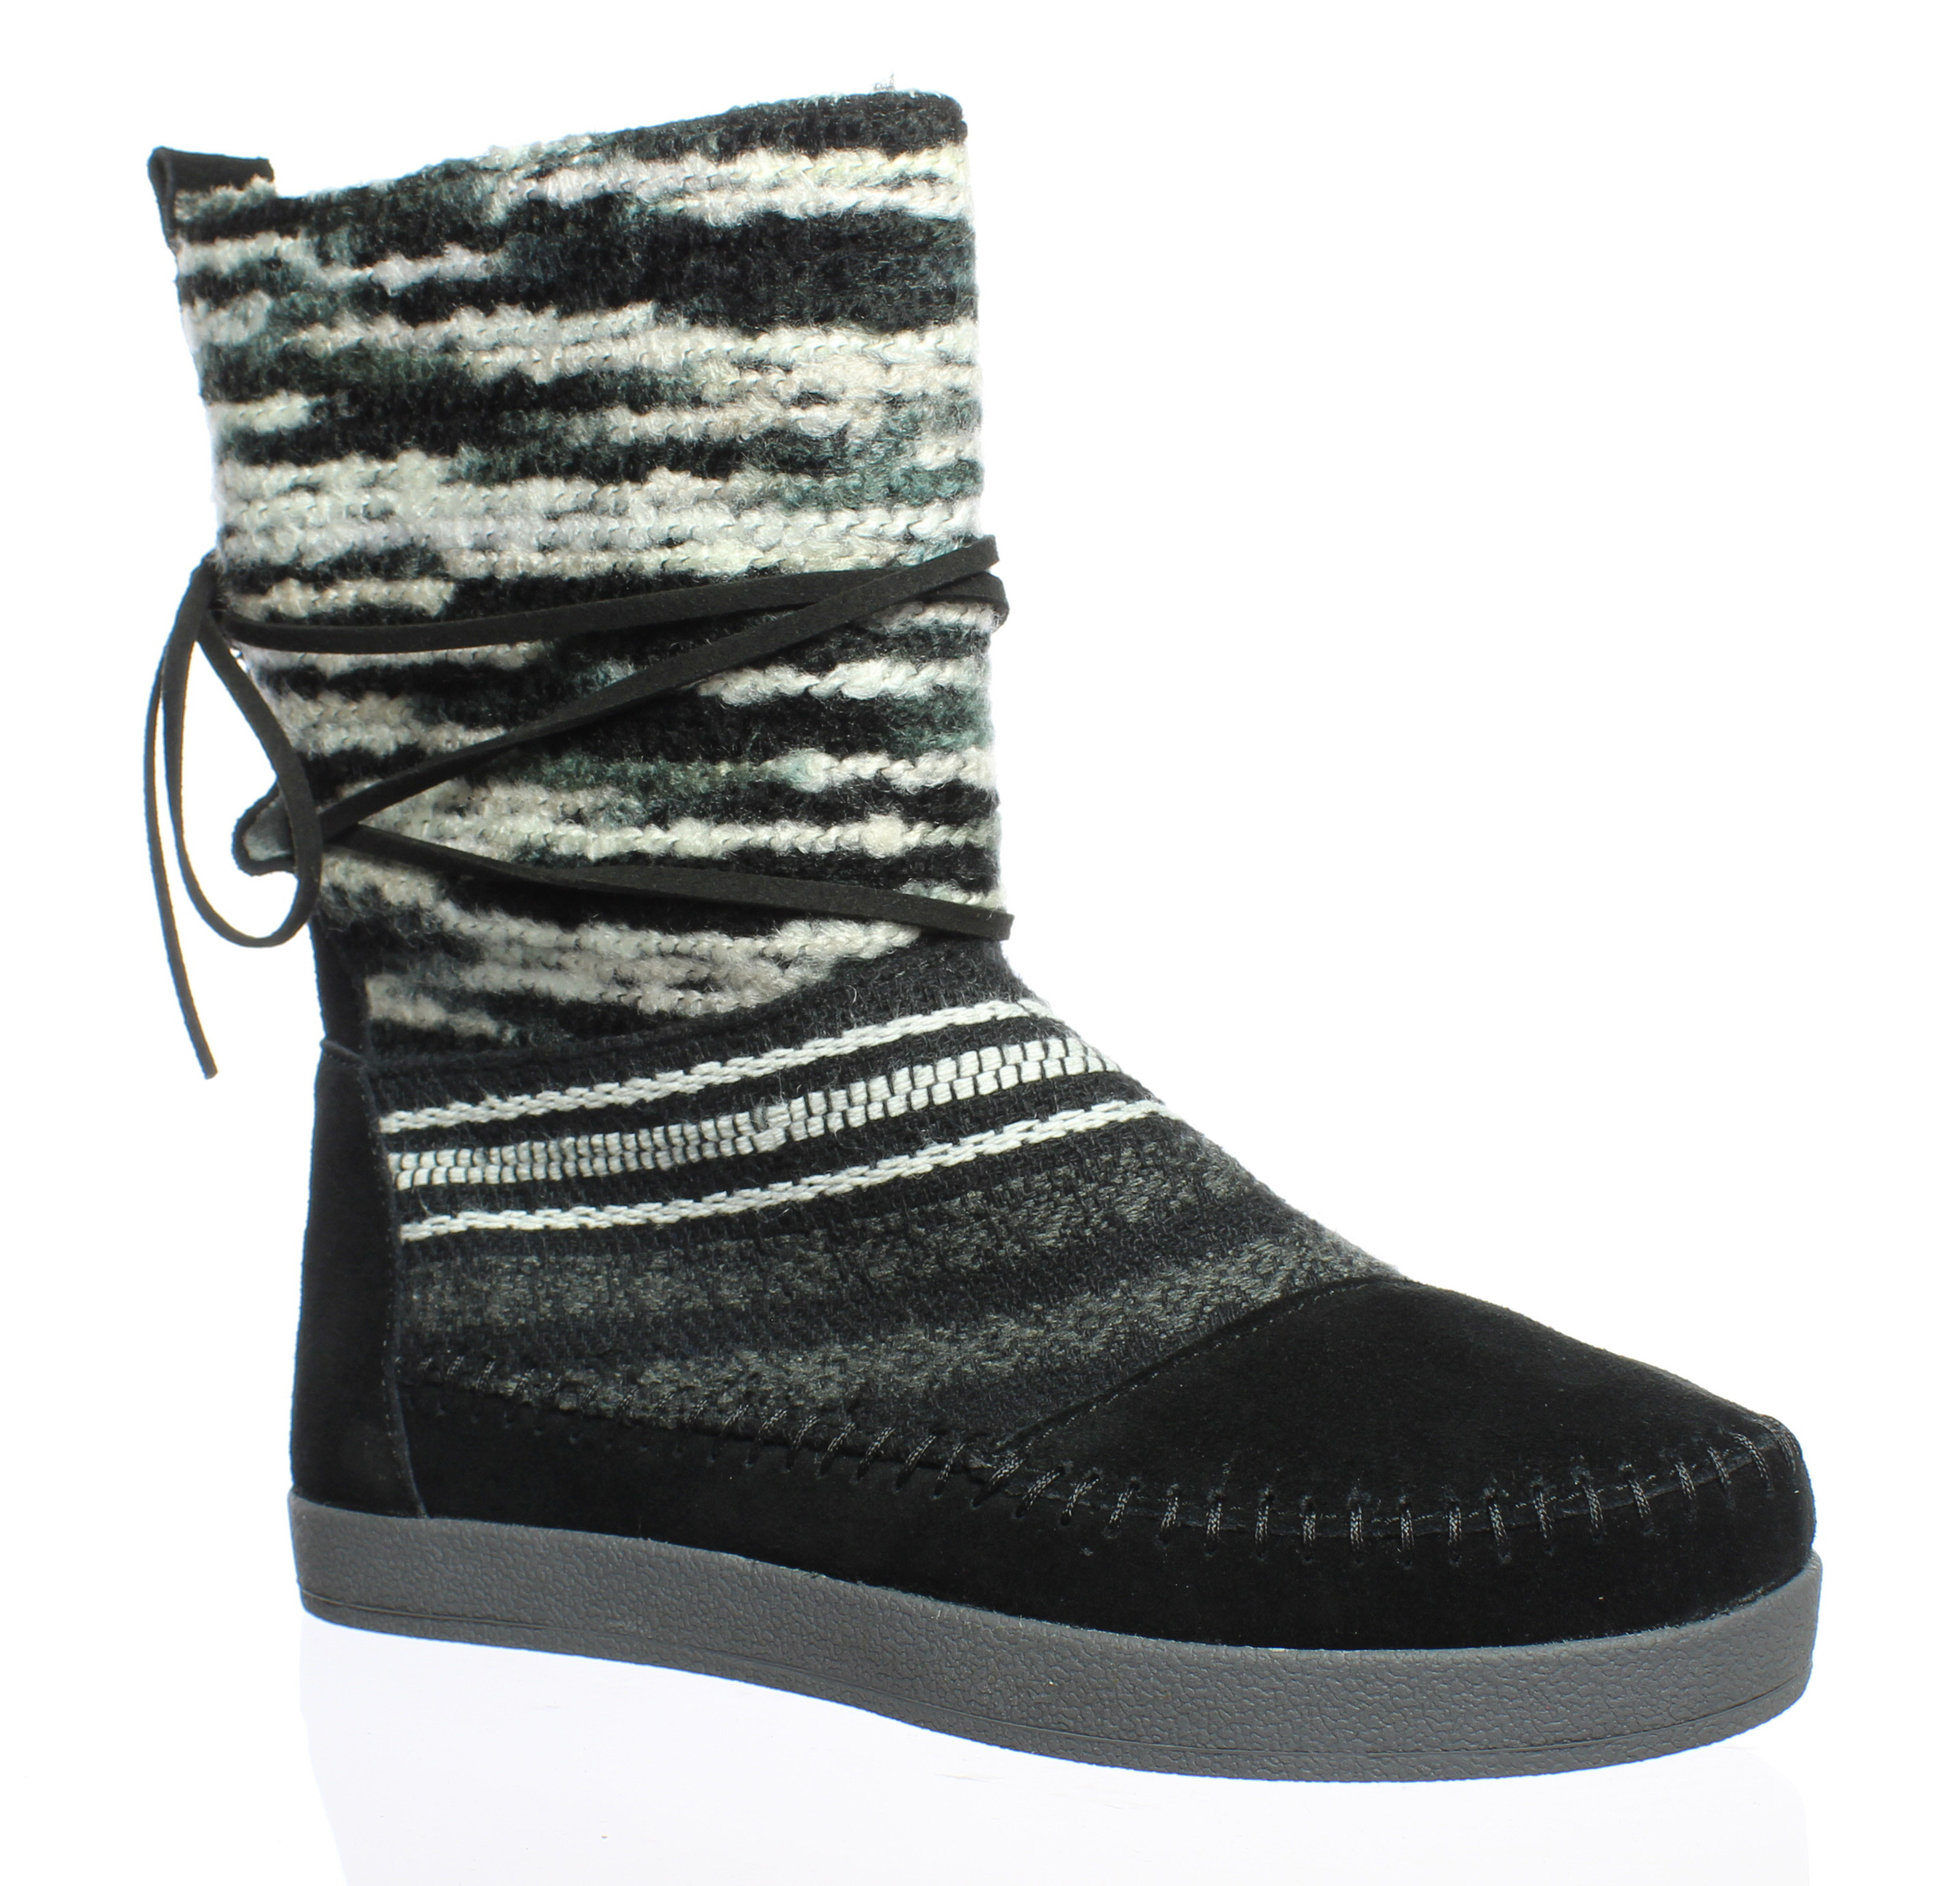 fede66ddbb1 TOMS Womens Nepal Black Ankle Boots Size 5 886468922159